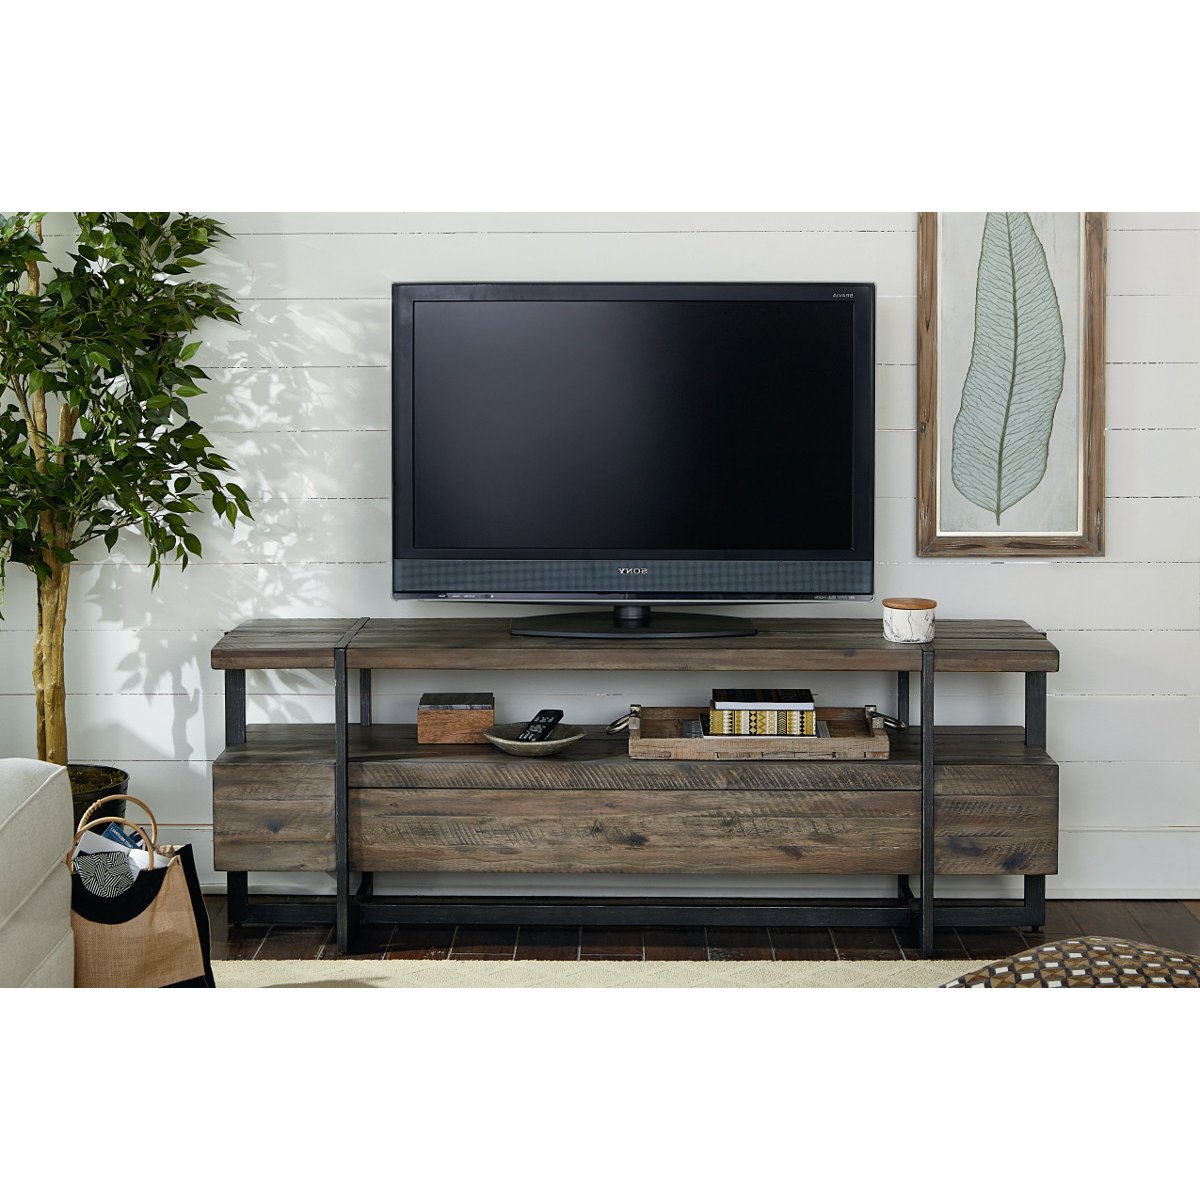 Rc Willey Furniture Regarding Rustic 60 Inch Tv Stands (View 7 of 20)